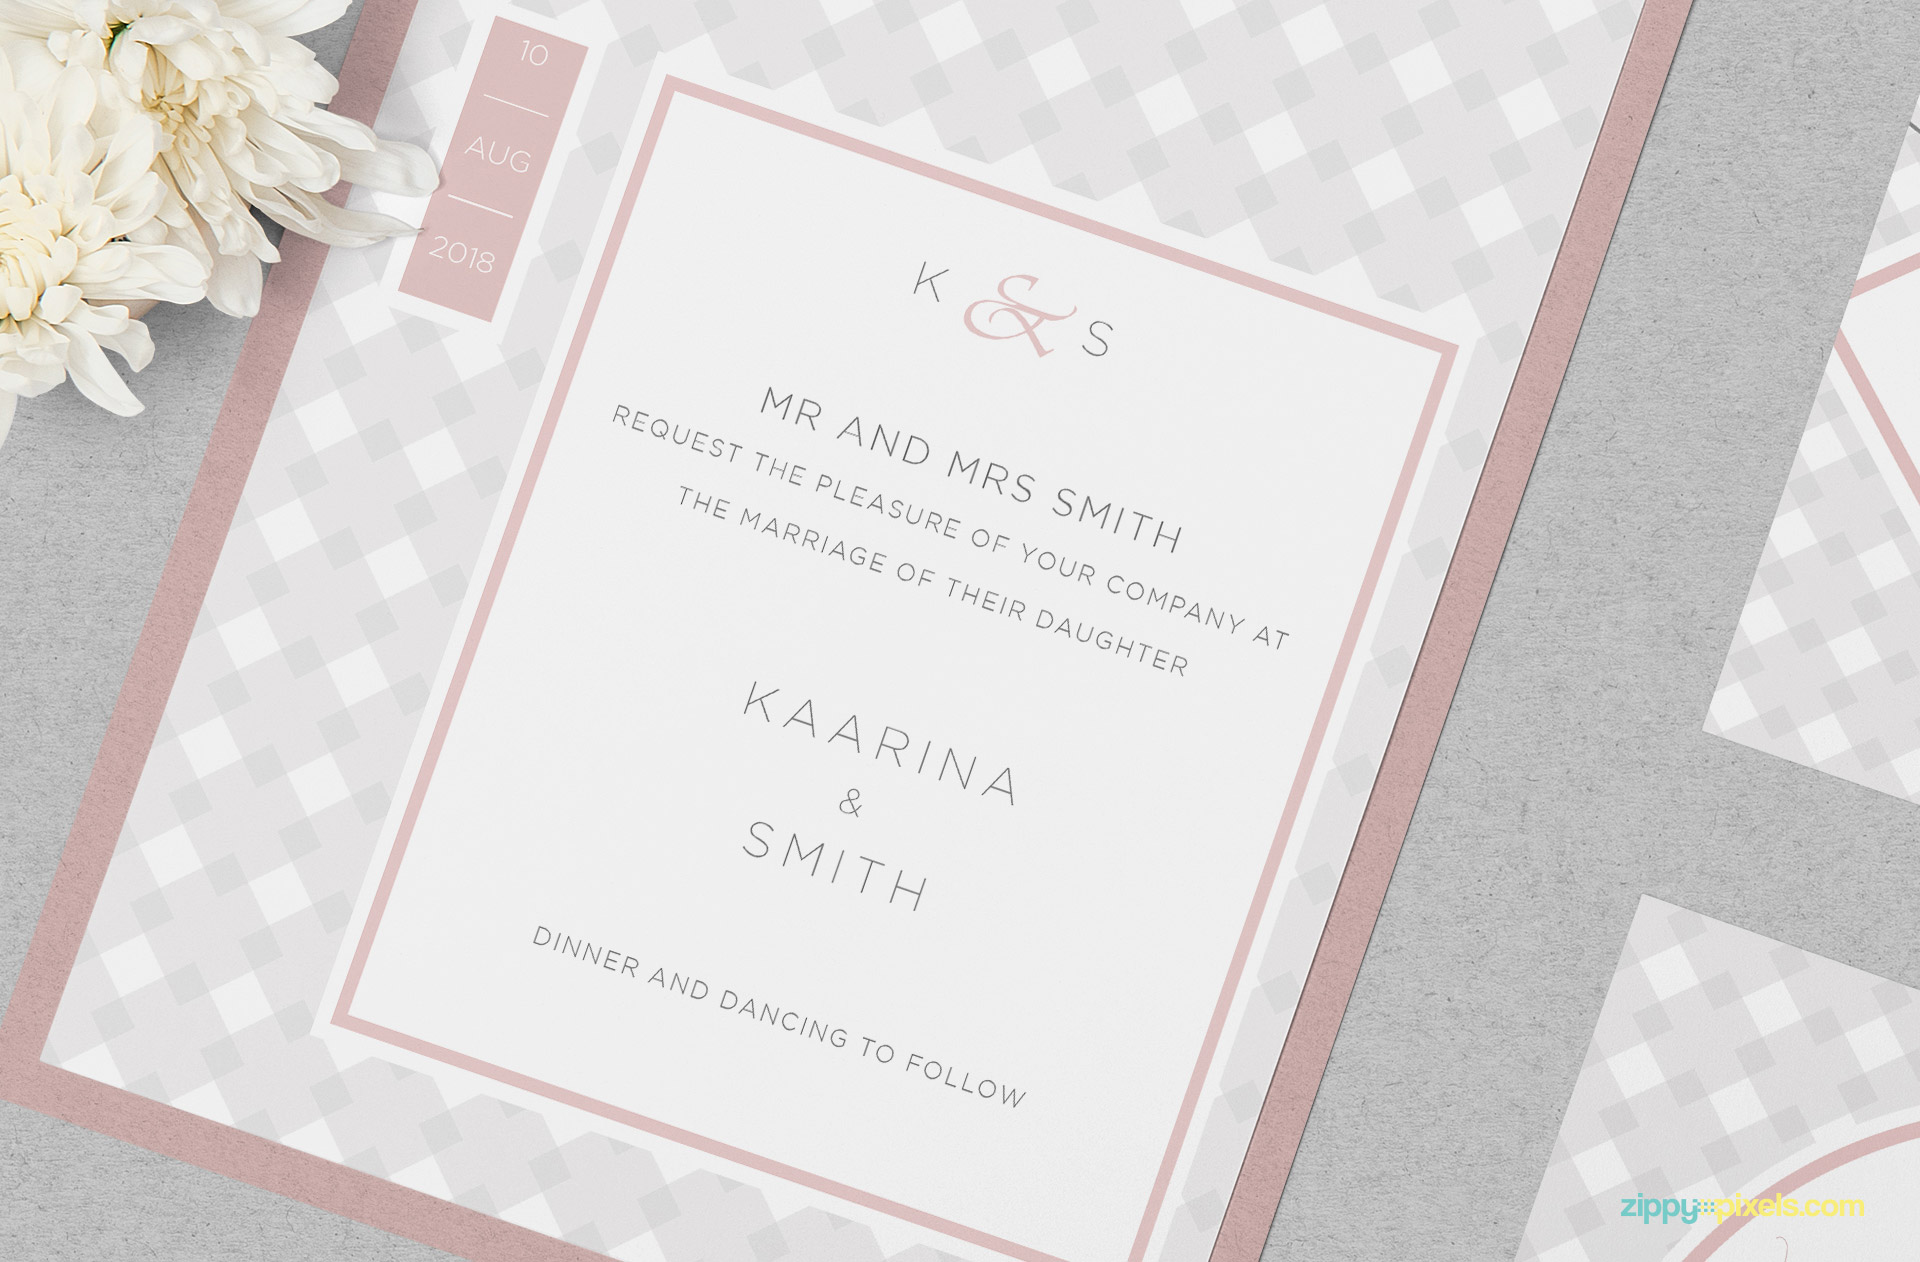 Beautiful wedding invitation card mockup.